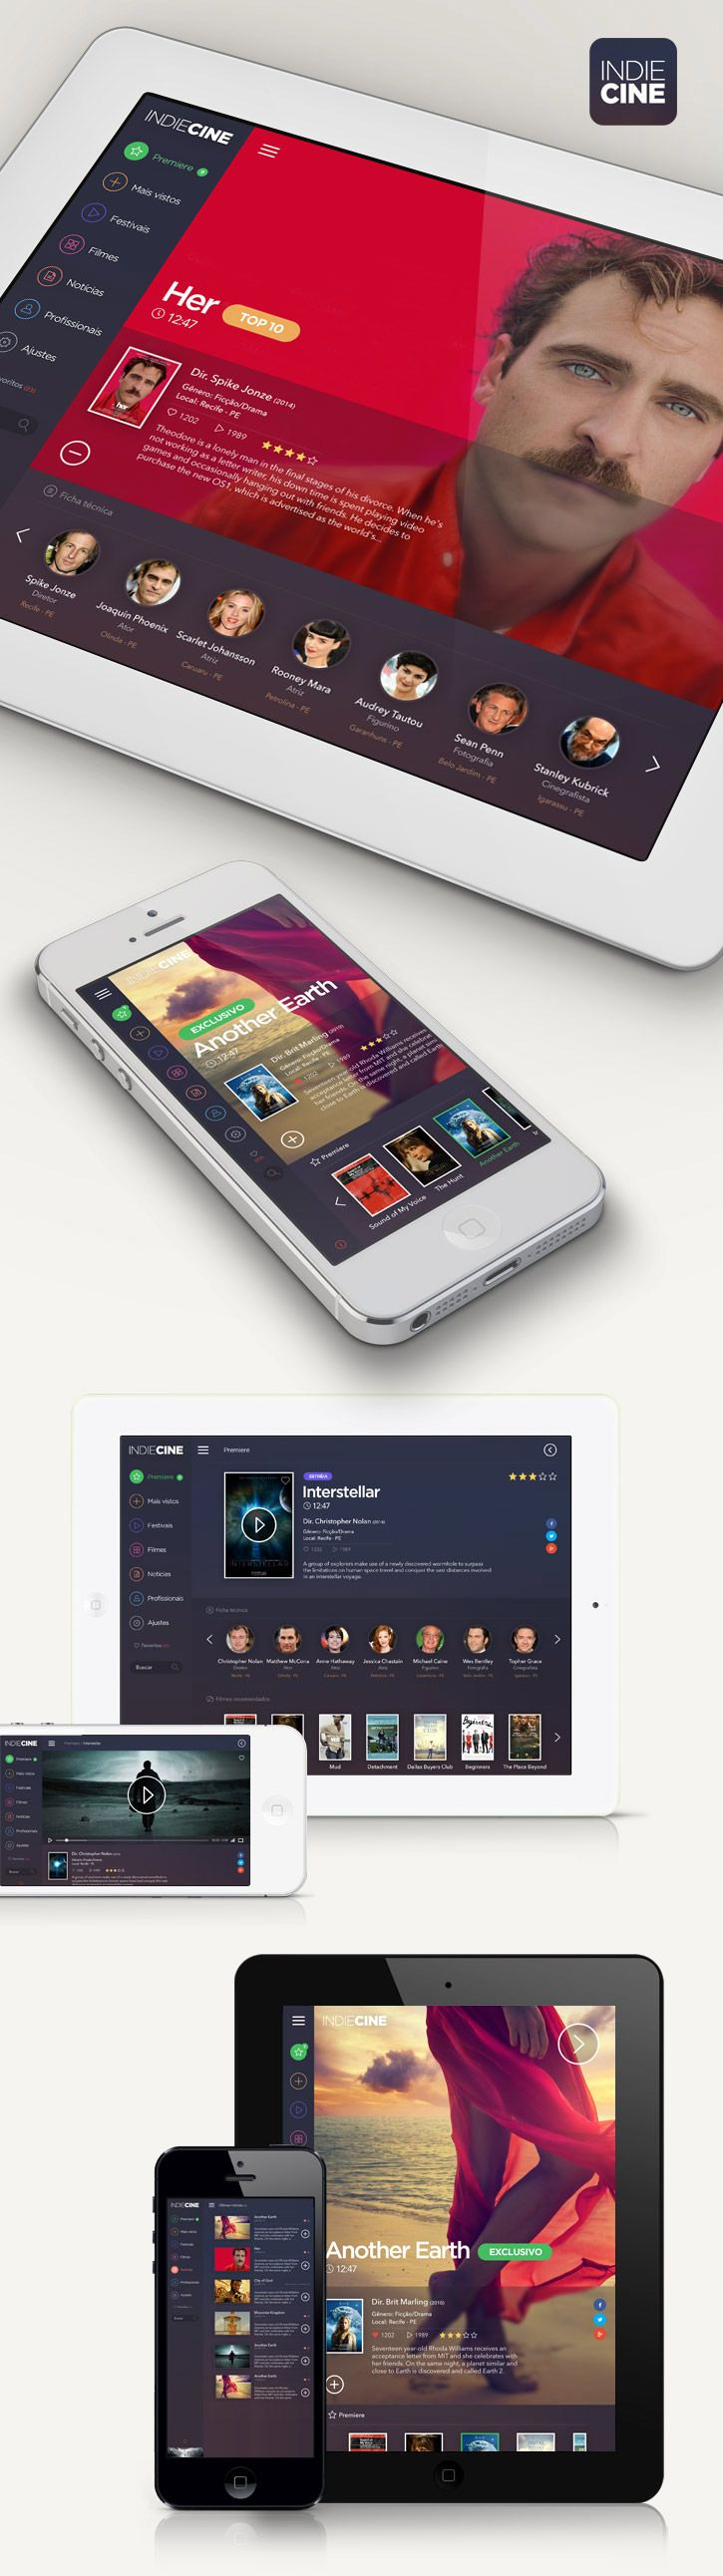 UI inspiration: Great App & Web Designs | From up North #design #mobile #ui #ux #flat #apps